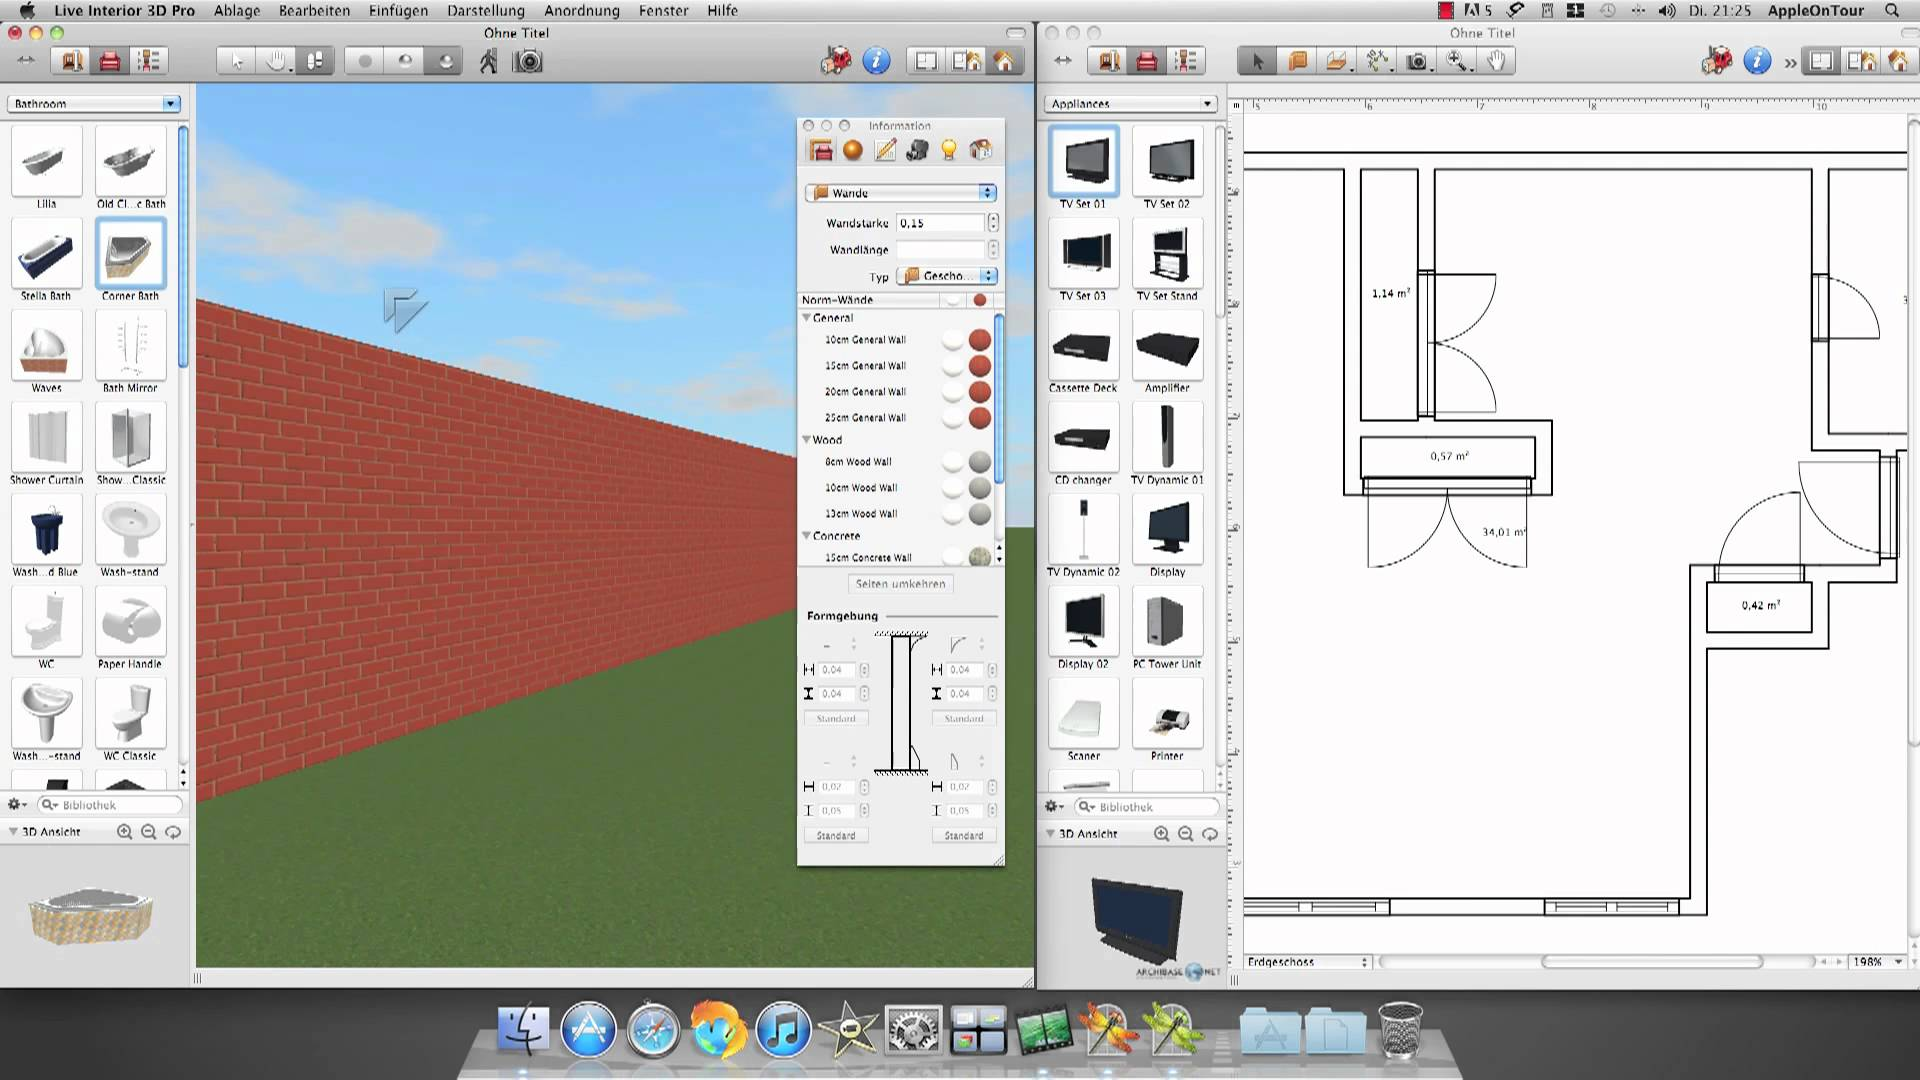 3d home design software apple 3d home design software - Free 3d home design software for mac ...